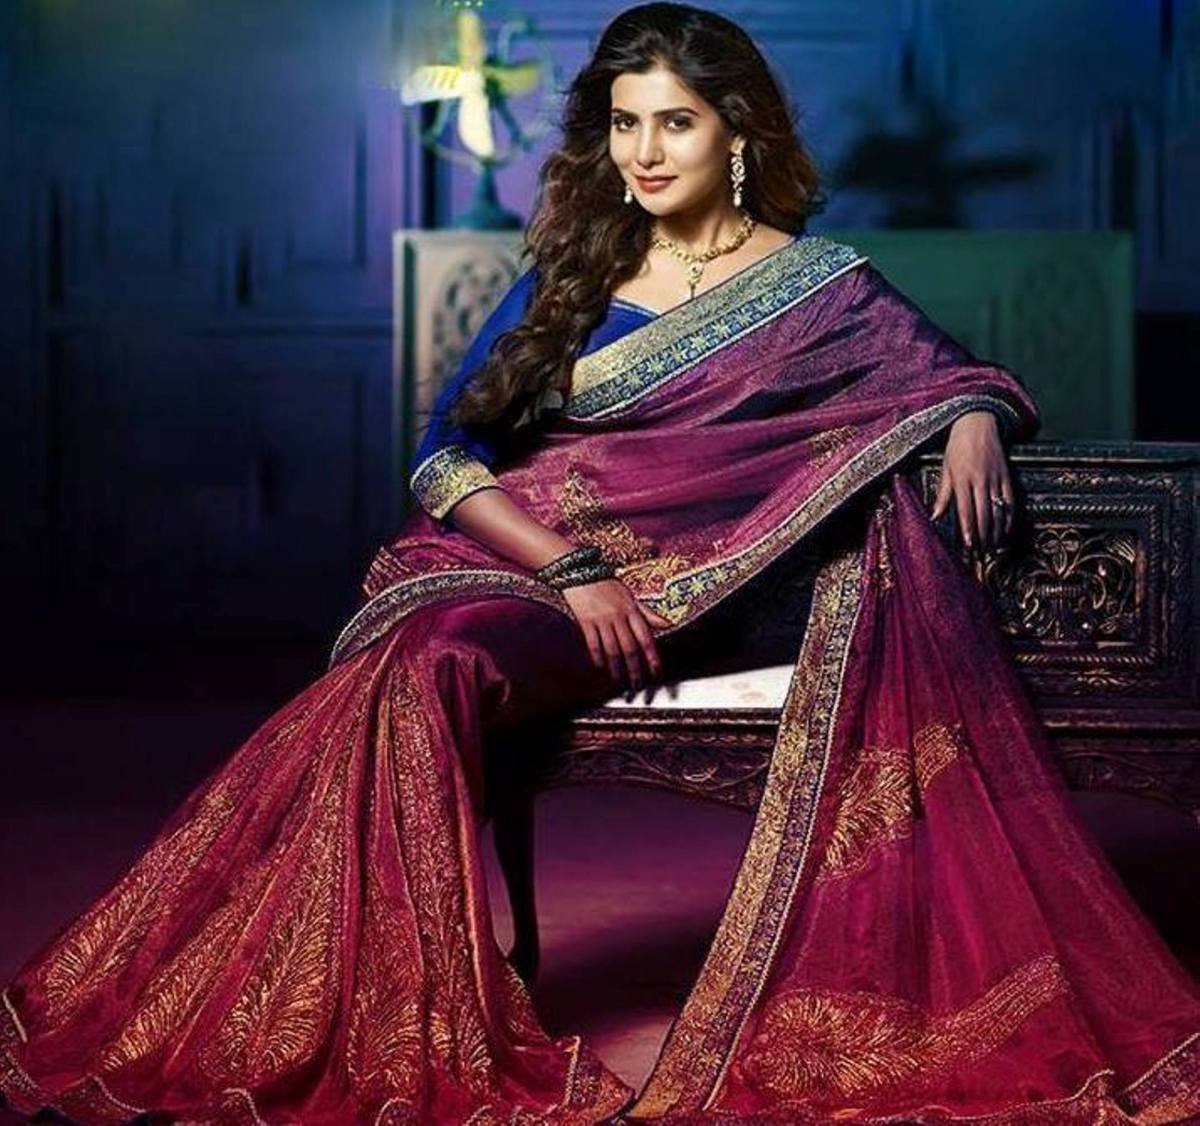 #SamanthaRuthPrabhu Hot saree photoshoot